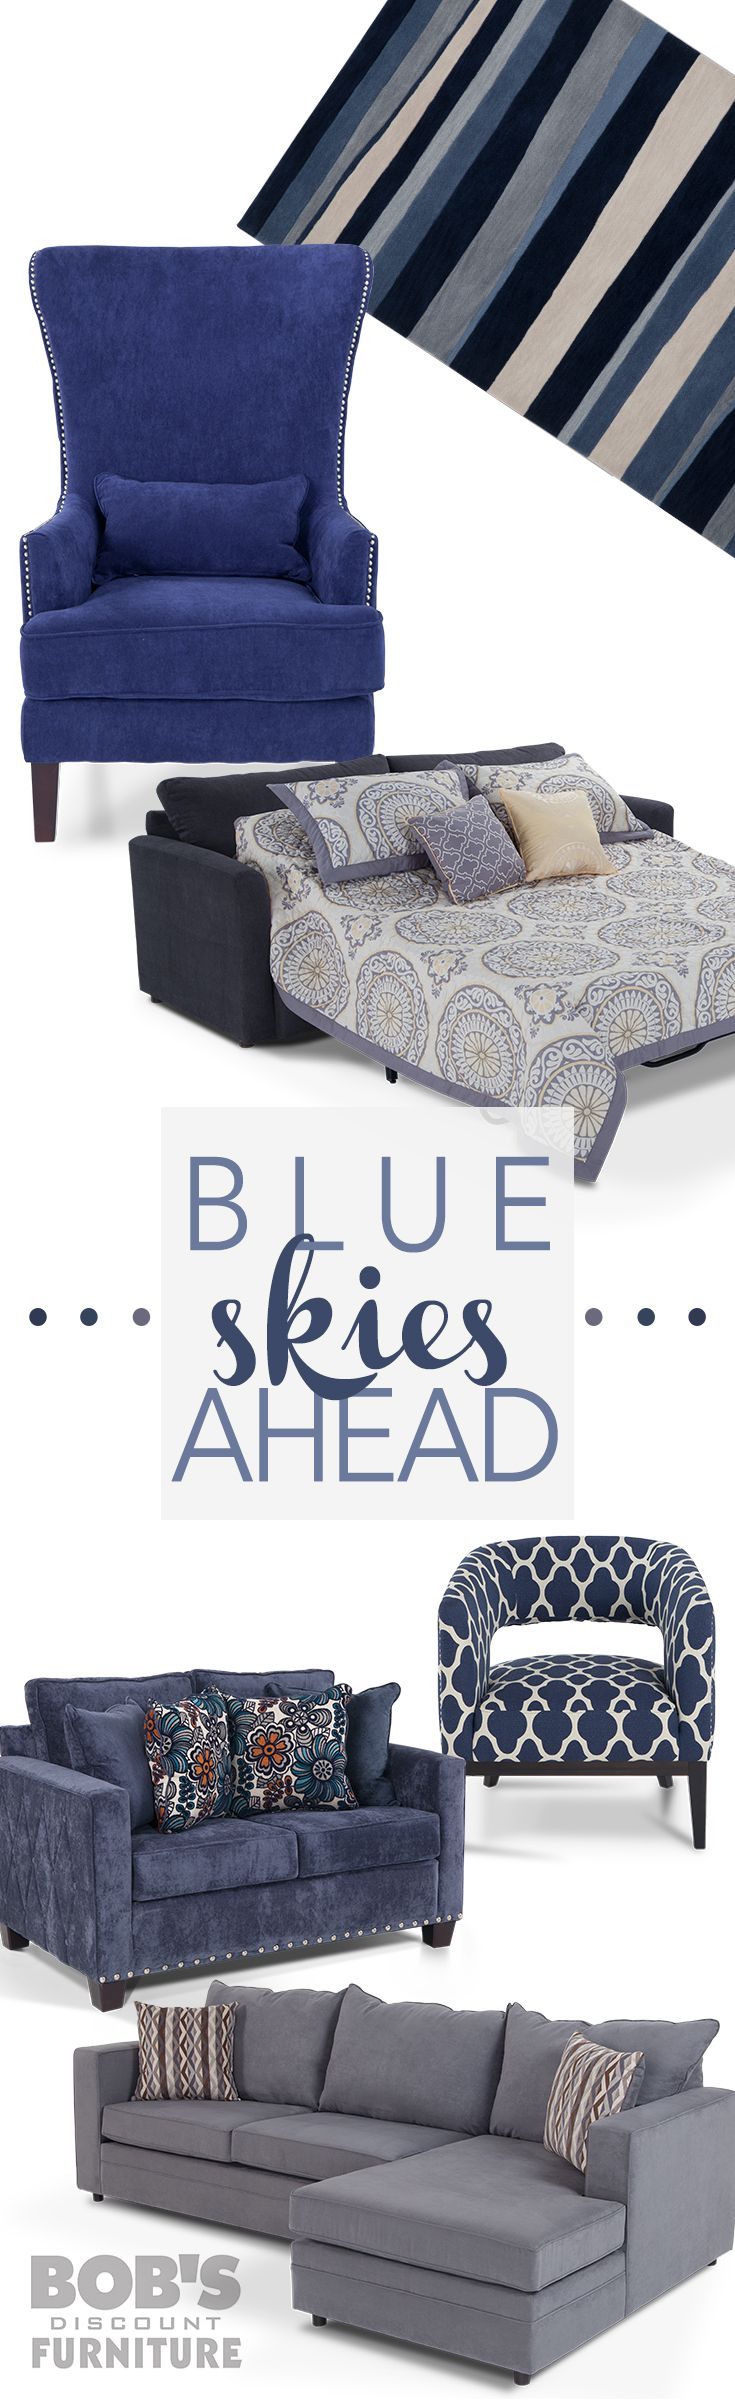 24 best blue skies ahead images on pinterest discount furniture